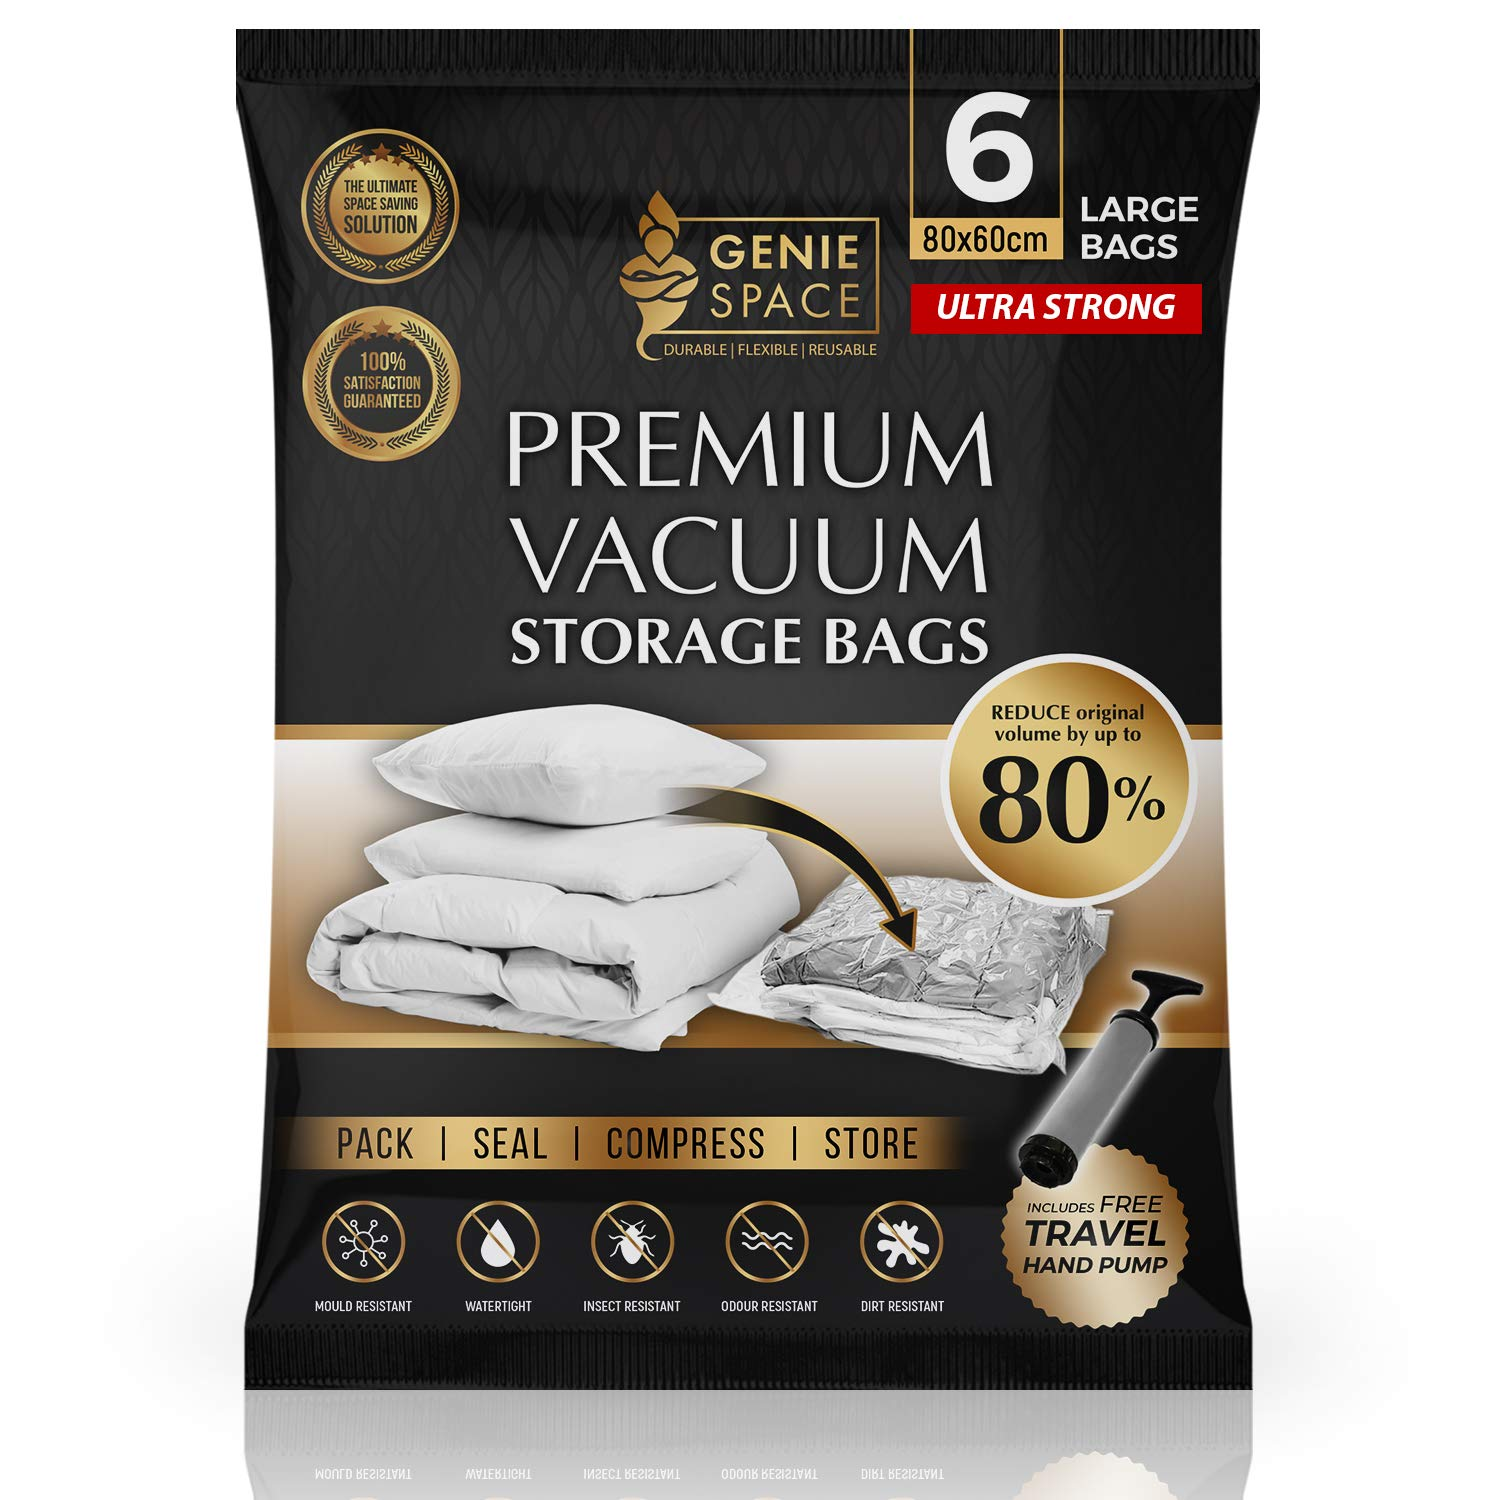 Duvets Vacuum Storage Bags With Double Zipper /& Turbo Valve Best Sealer Bags for Clothes Pillows Reusable space savers bag for travel packing Curtains Extra Large 60 x 100 CM Blankets Bedding